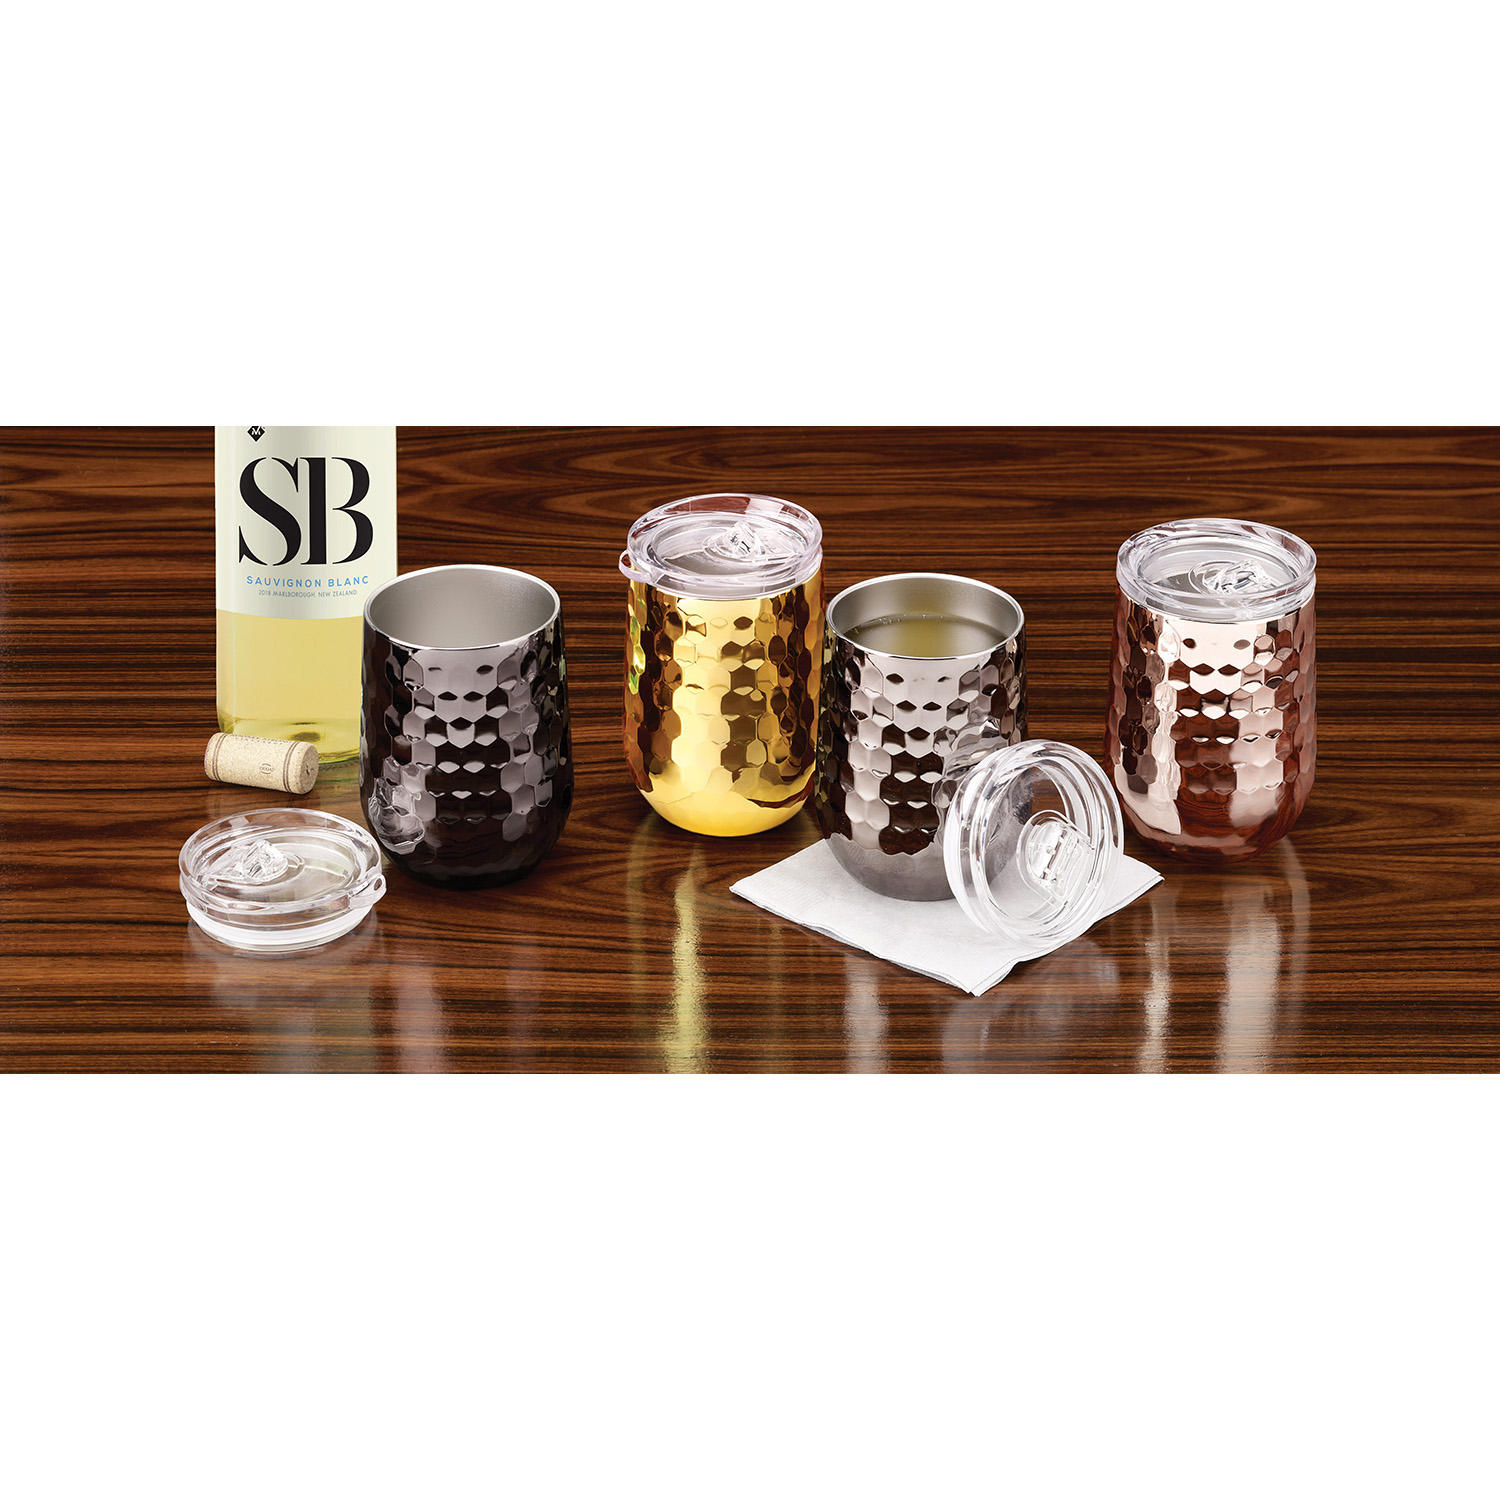 Member's Mark Insulated Wine Tumblers 4-Pack Set